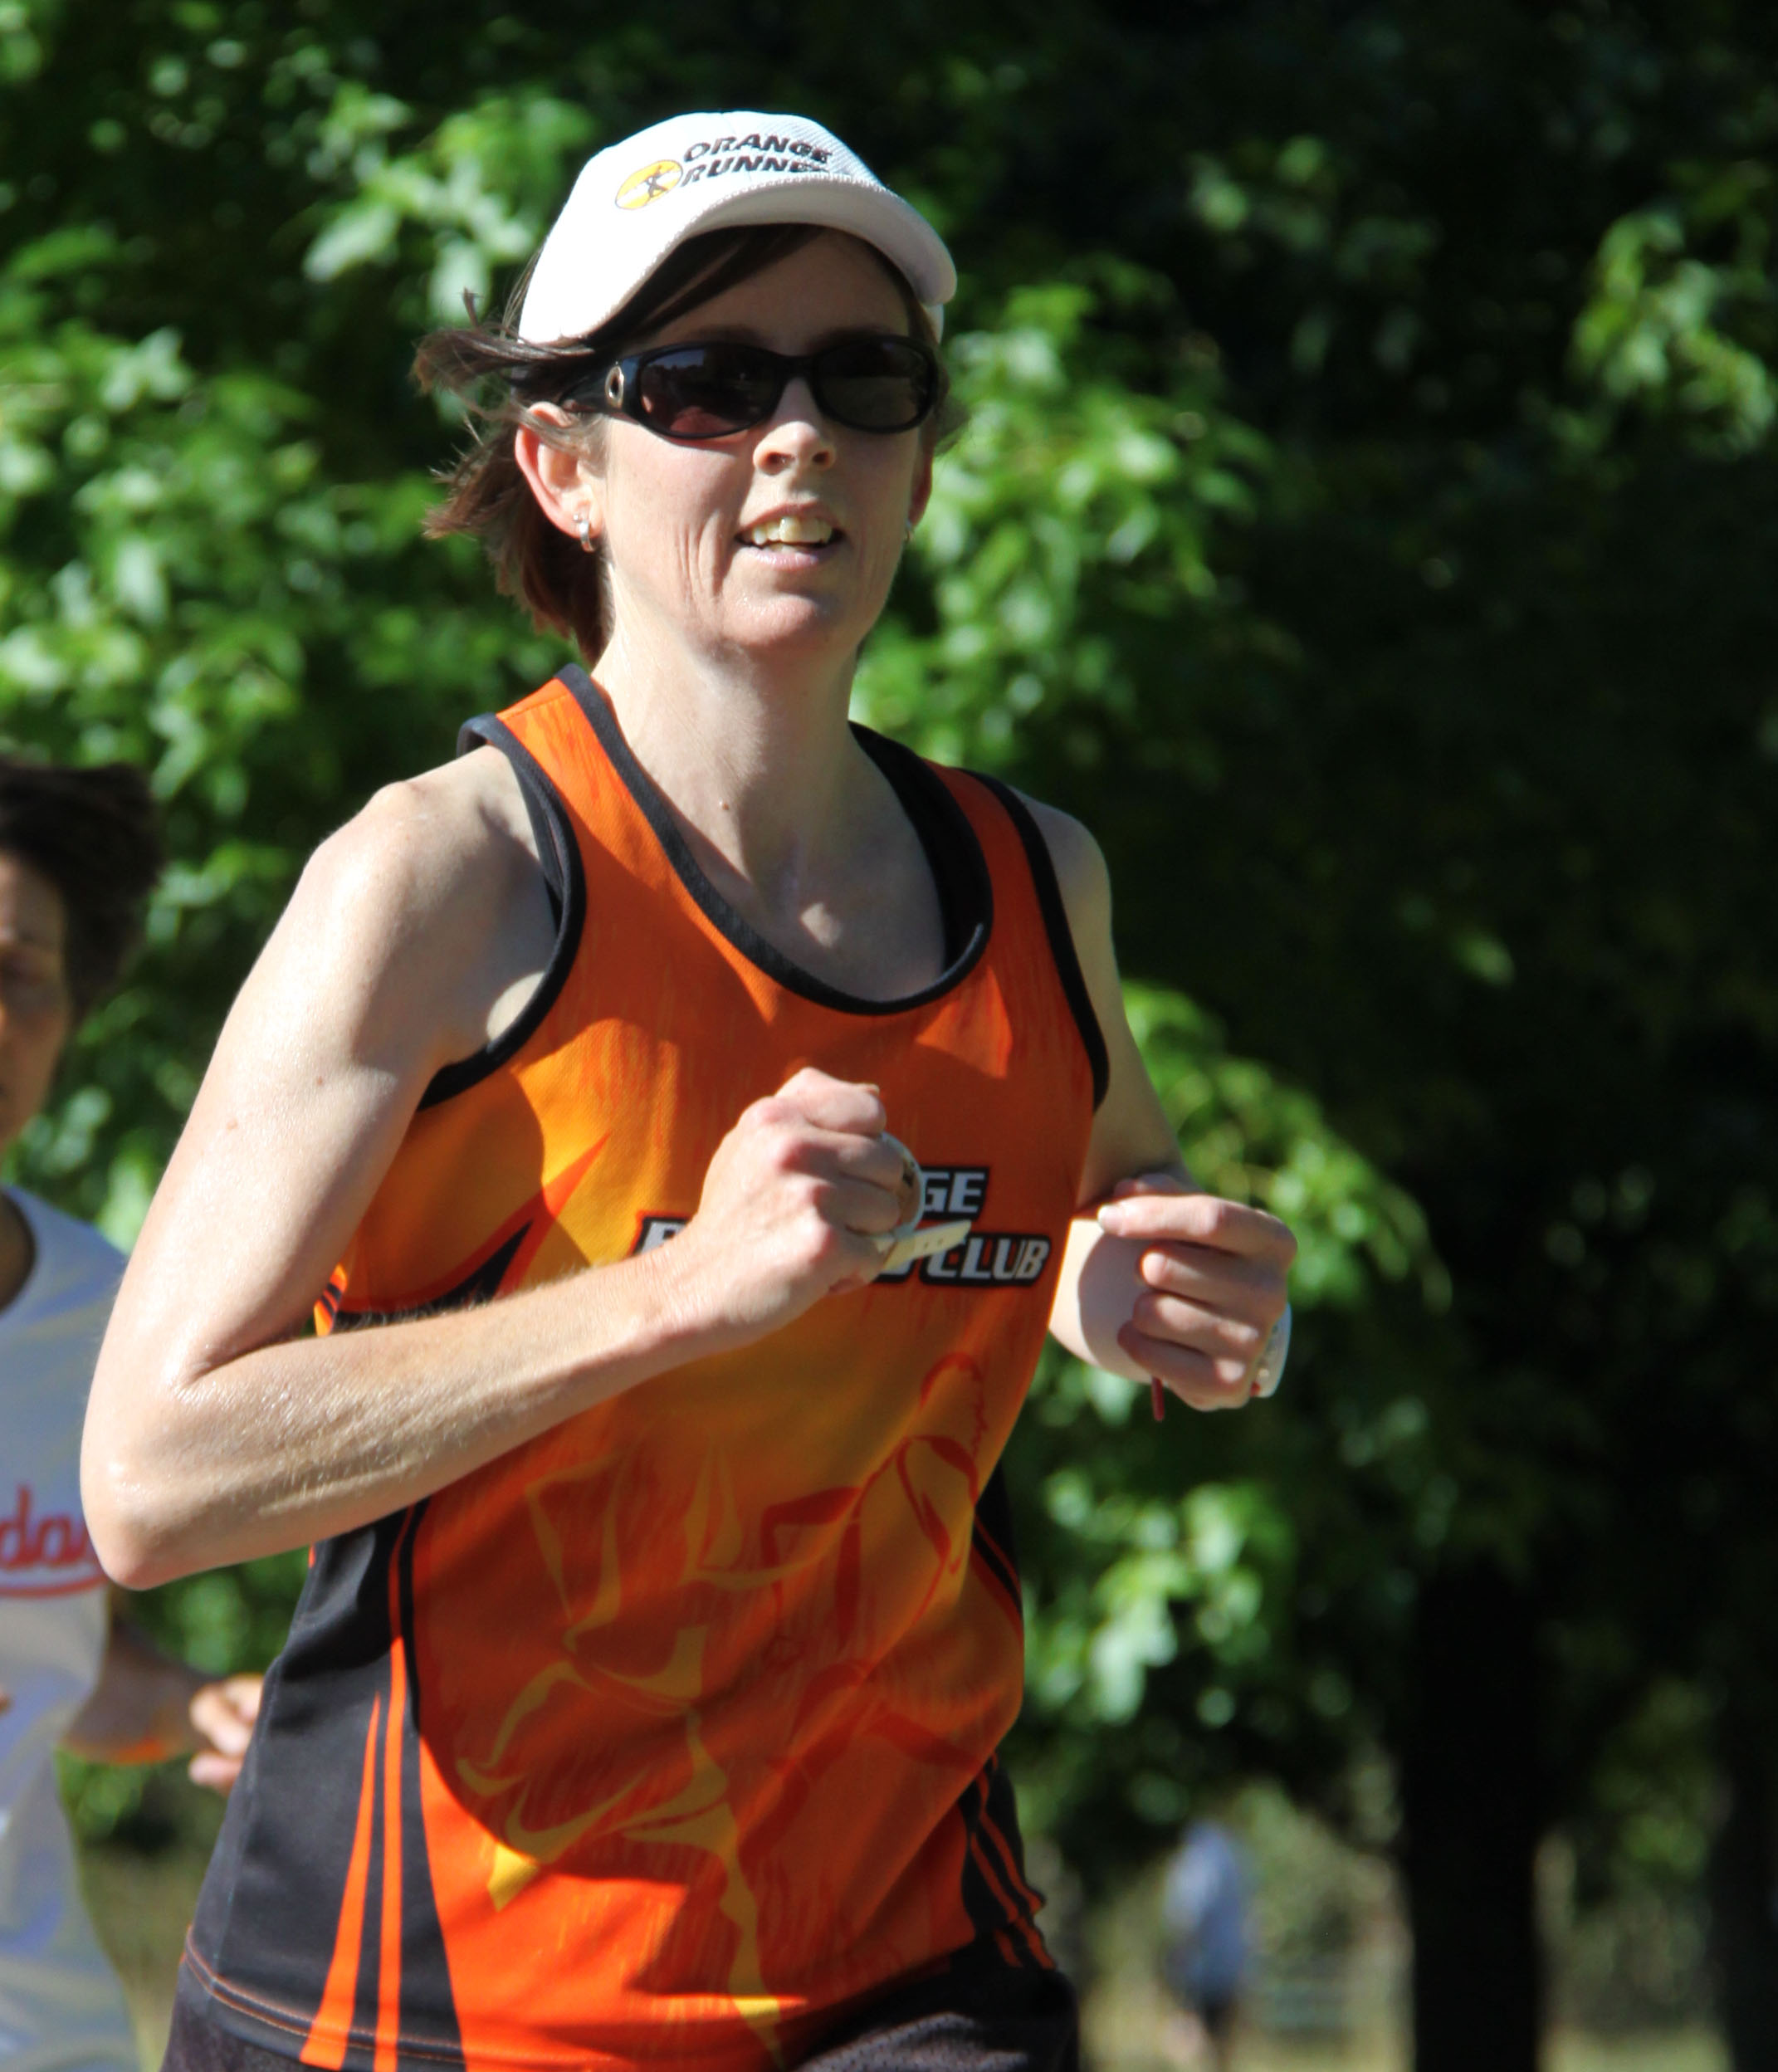 LEADING LADY: Kim Jarvis has been ultra consistent of recent weeks, placing most weekends and being the fastest female runner on Wednesday. Kim also has the third most amount of club runs overall with 1143 starts.